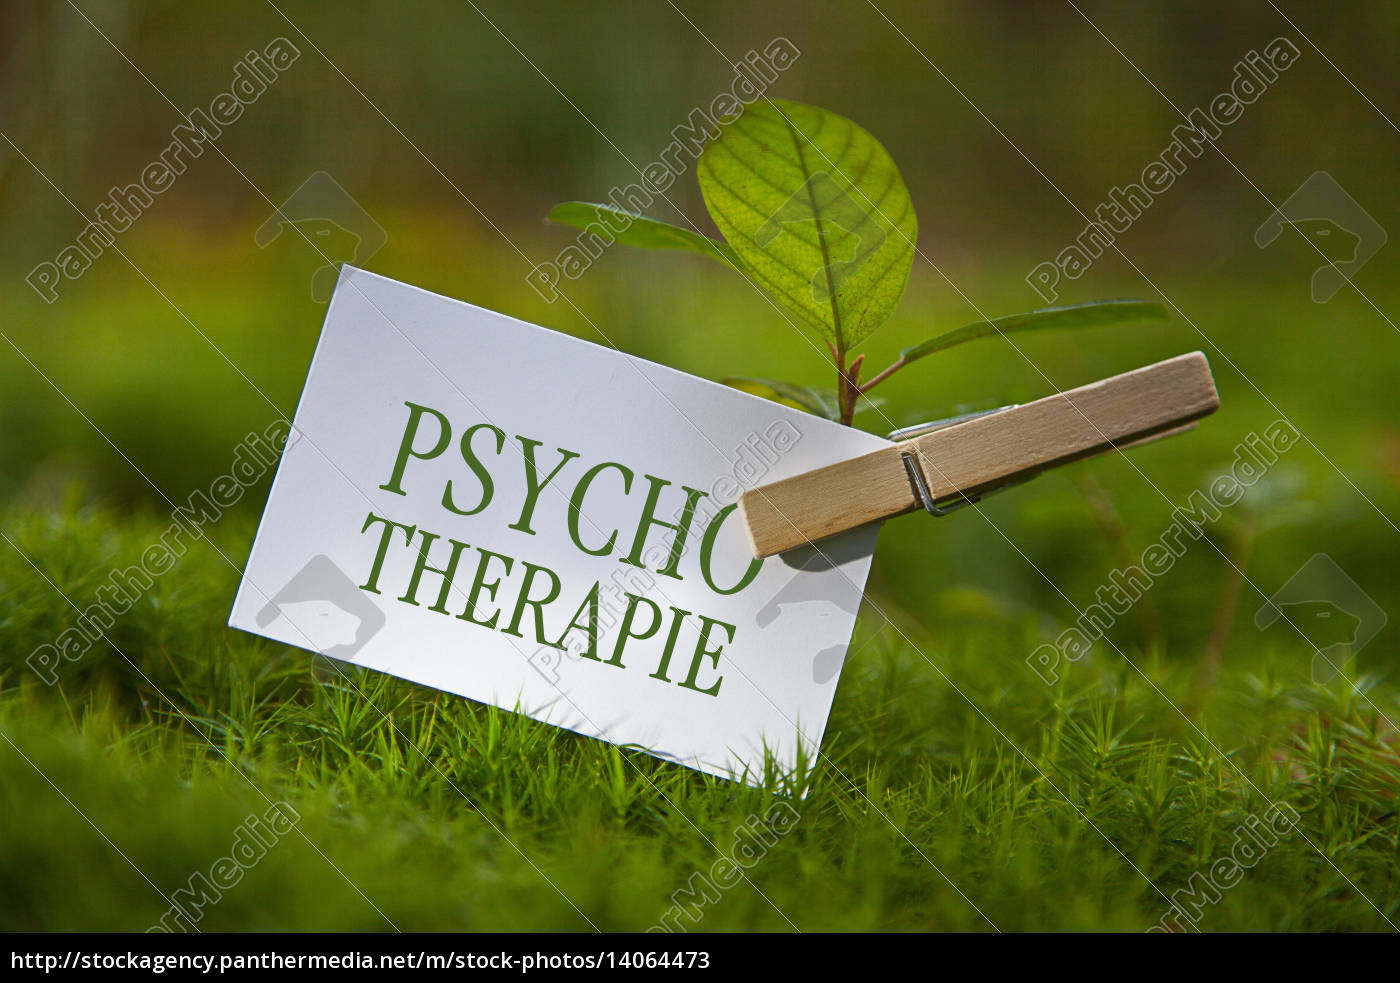 psychotherapy - 14064473